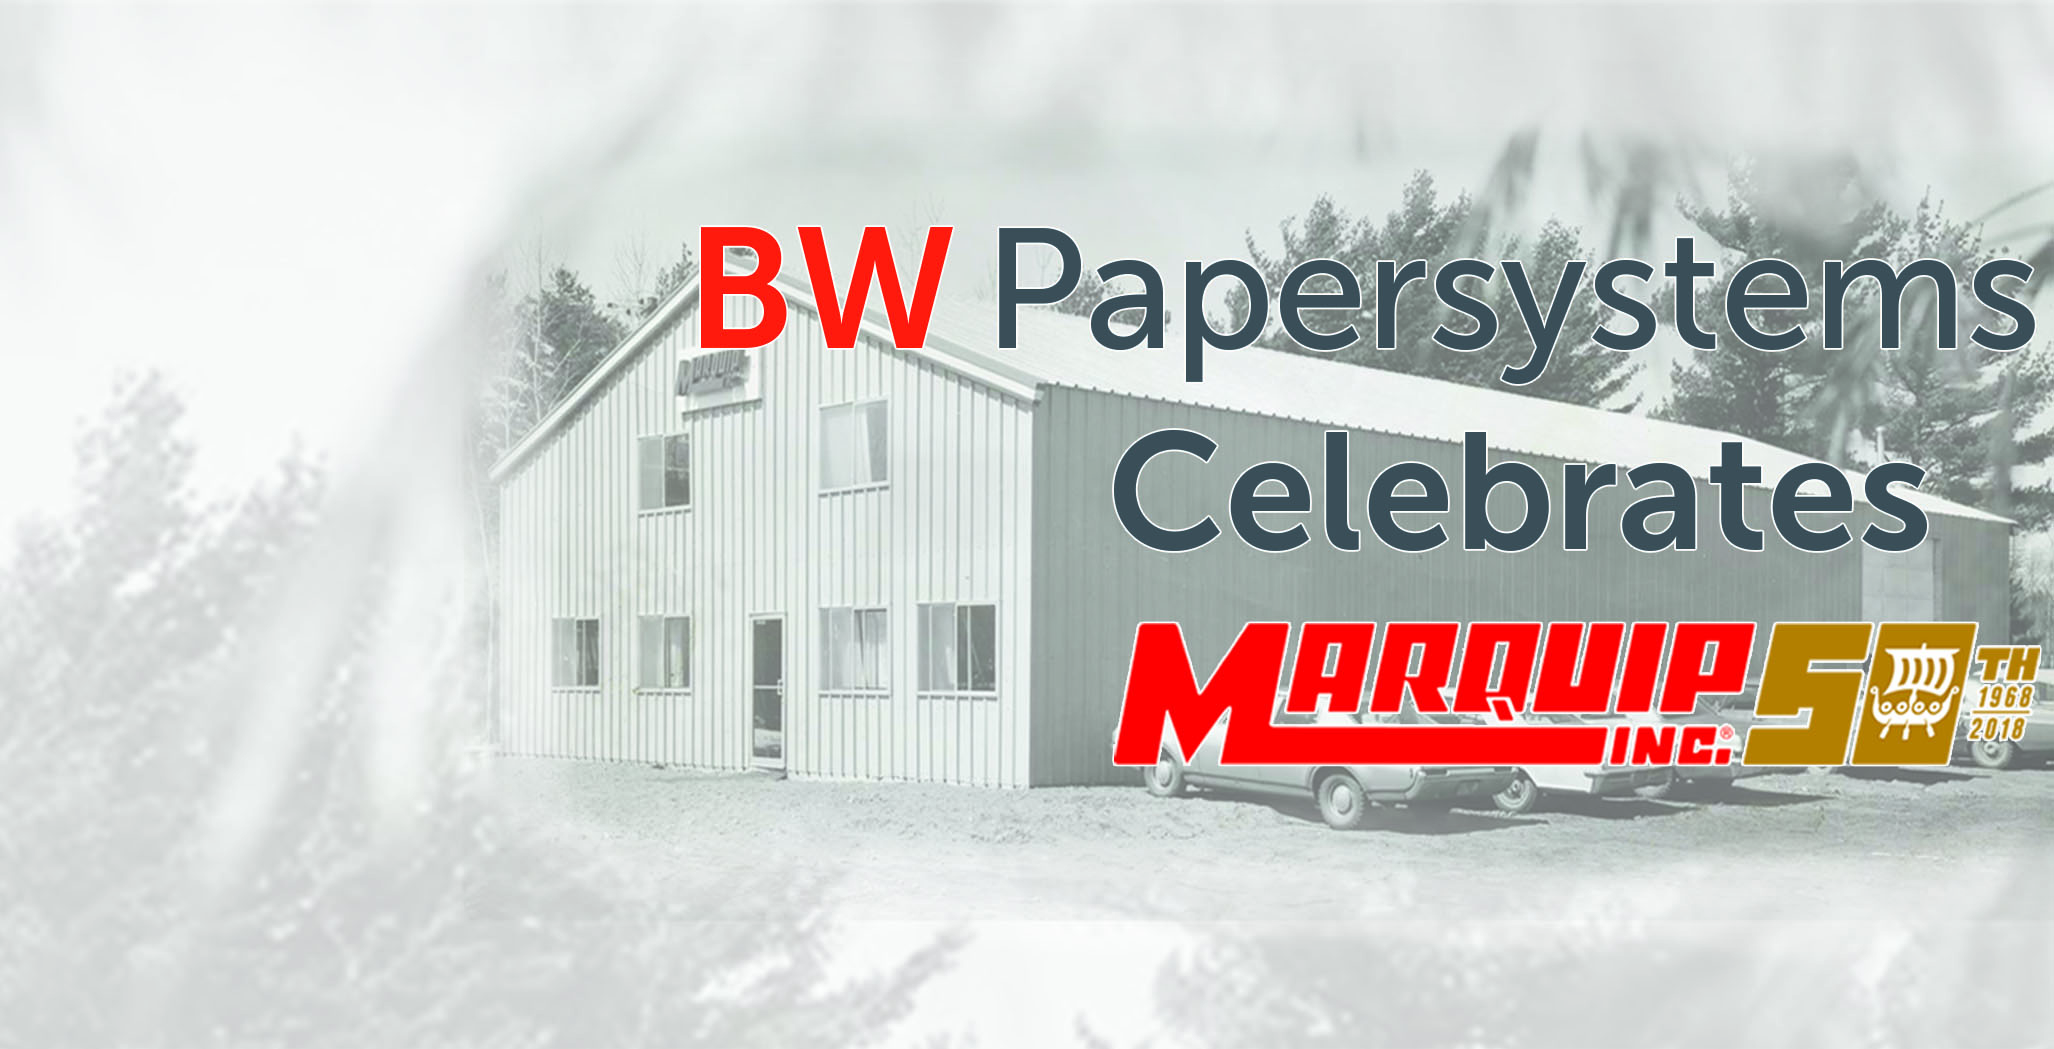 BW Papersystems Celebrates Marquip